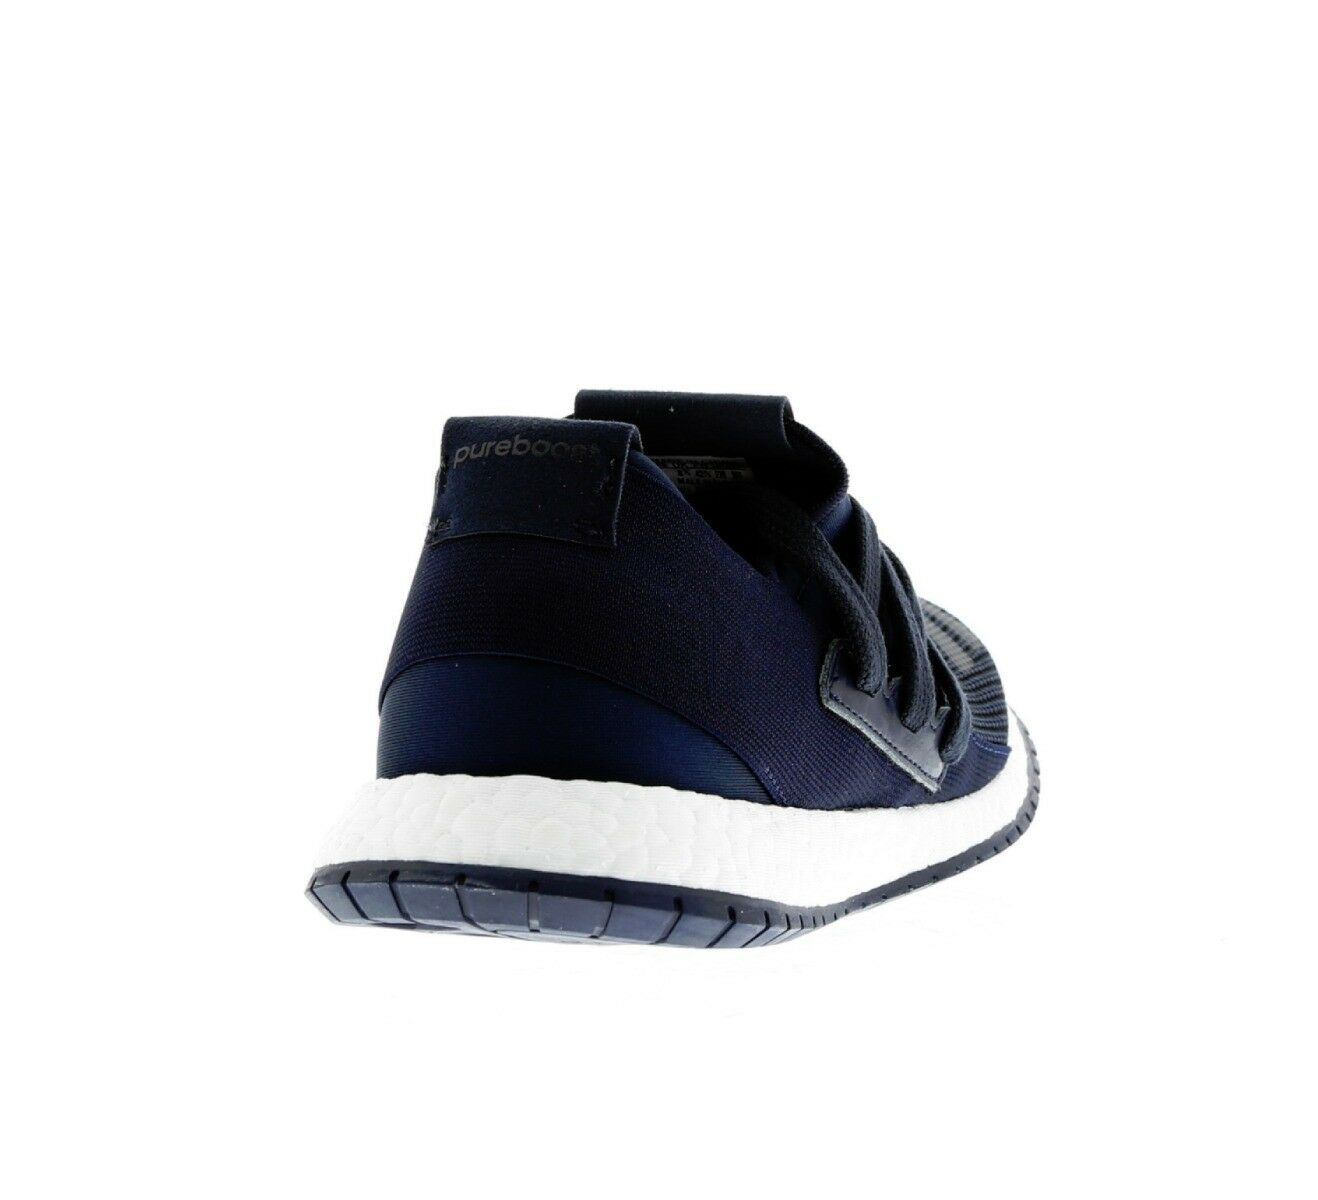 Adidas Pureboost UK Hommes / Baskets pour Femme Chaussures Course UK Pureboost Taille 3.5 1c7a9b